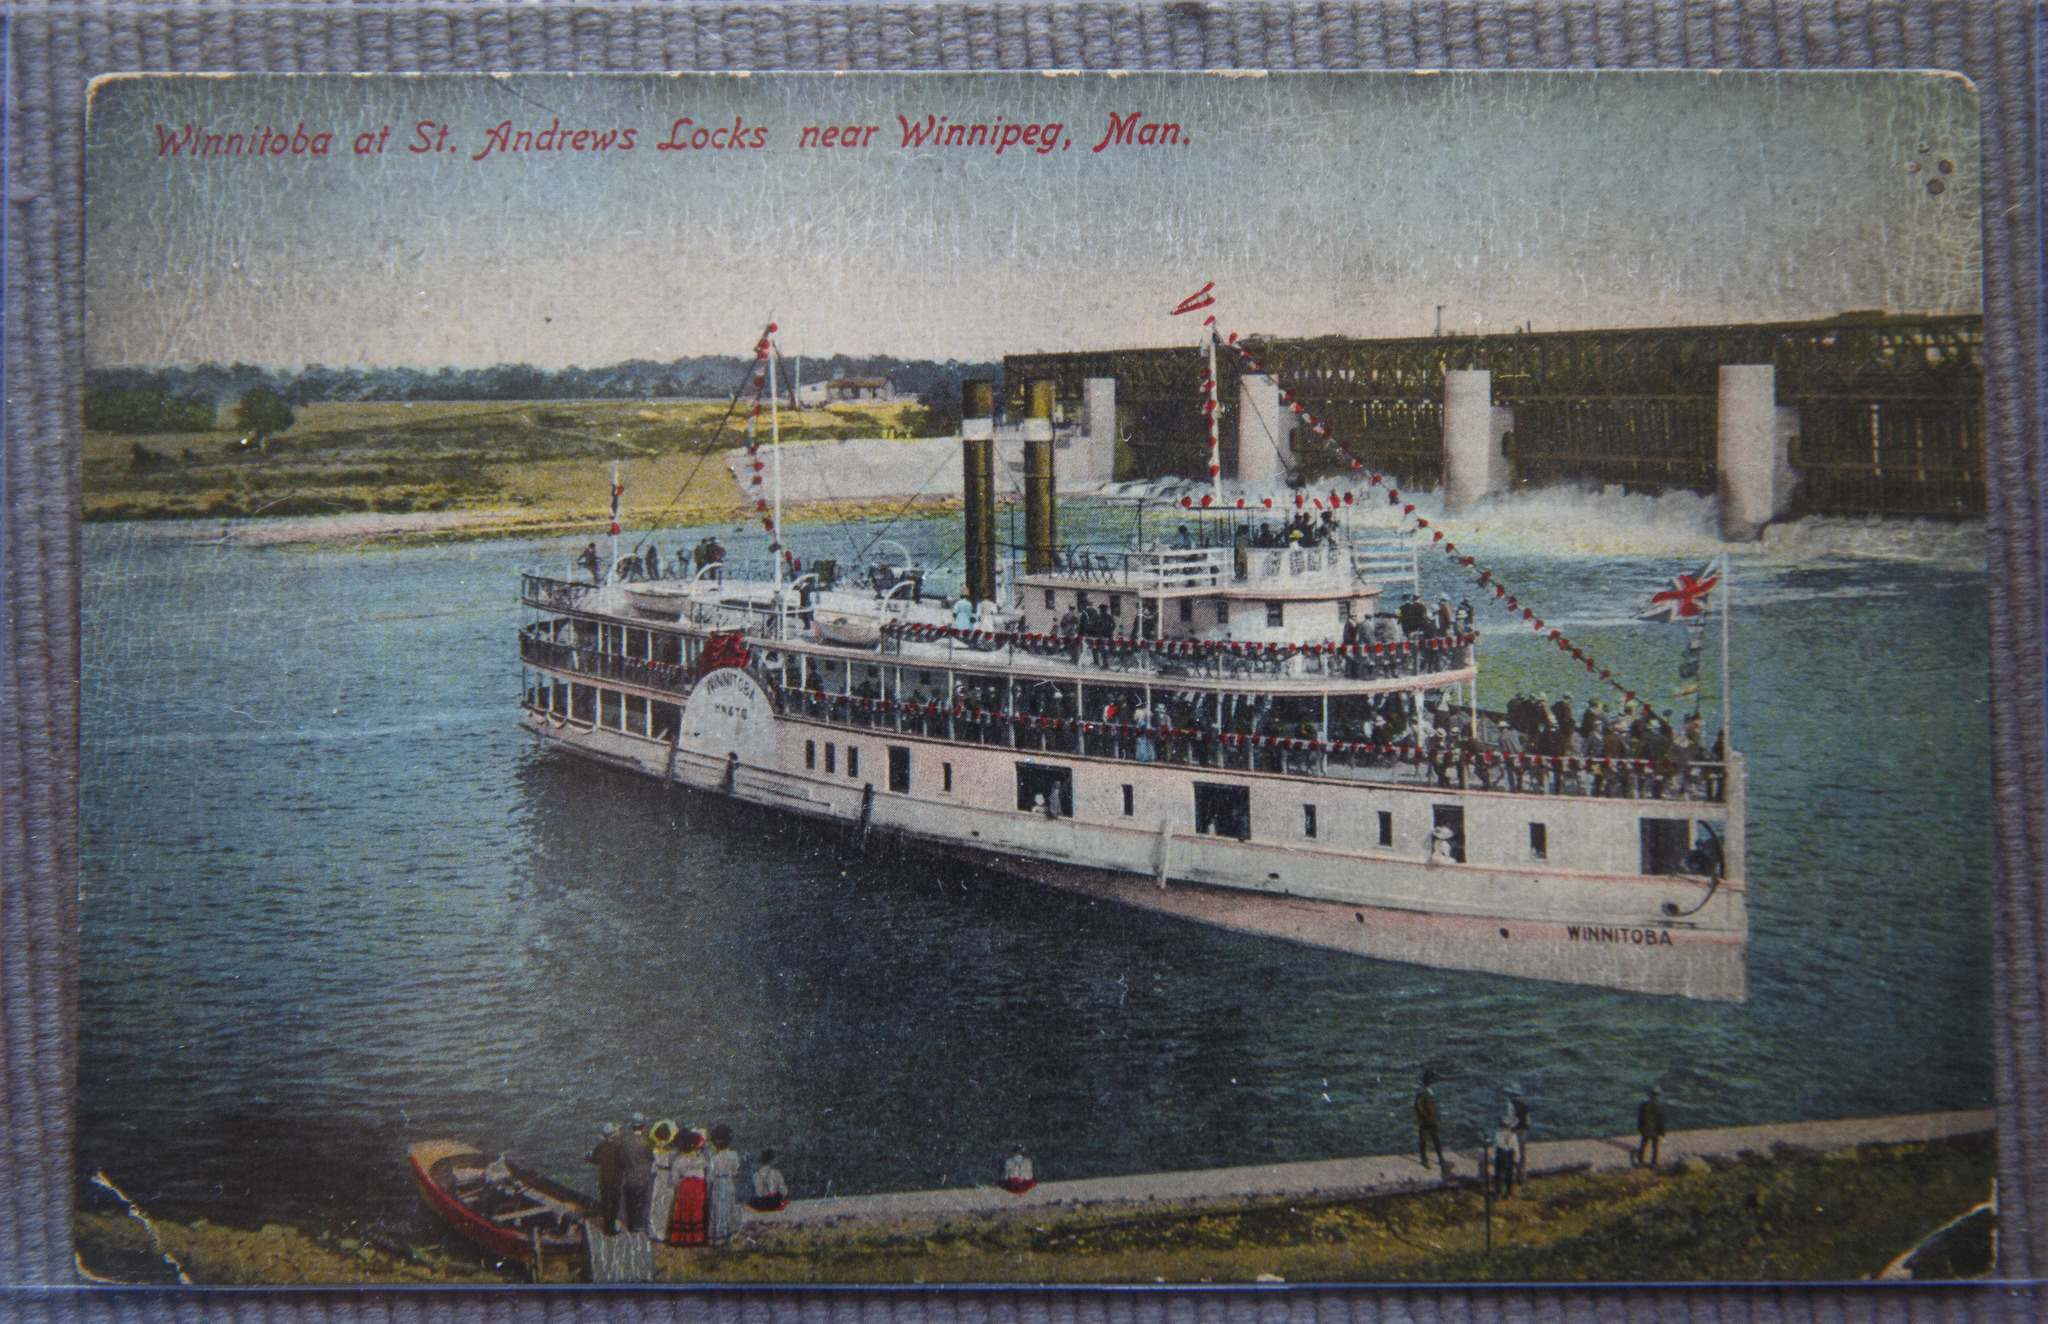 A postcard featuring the S.S. Winnitoba.